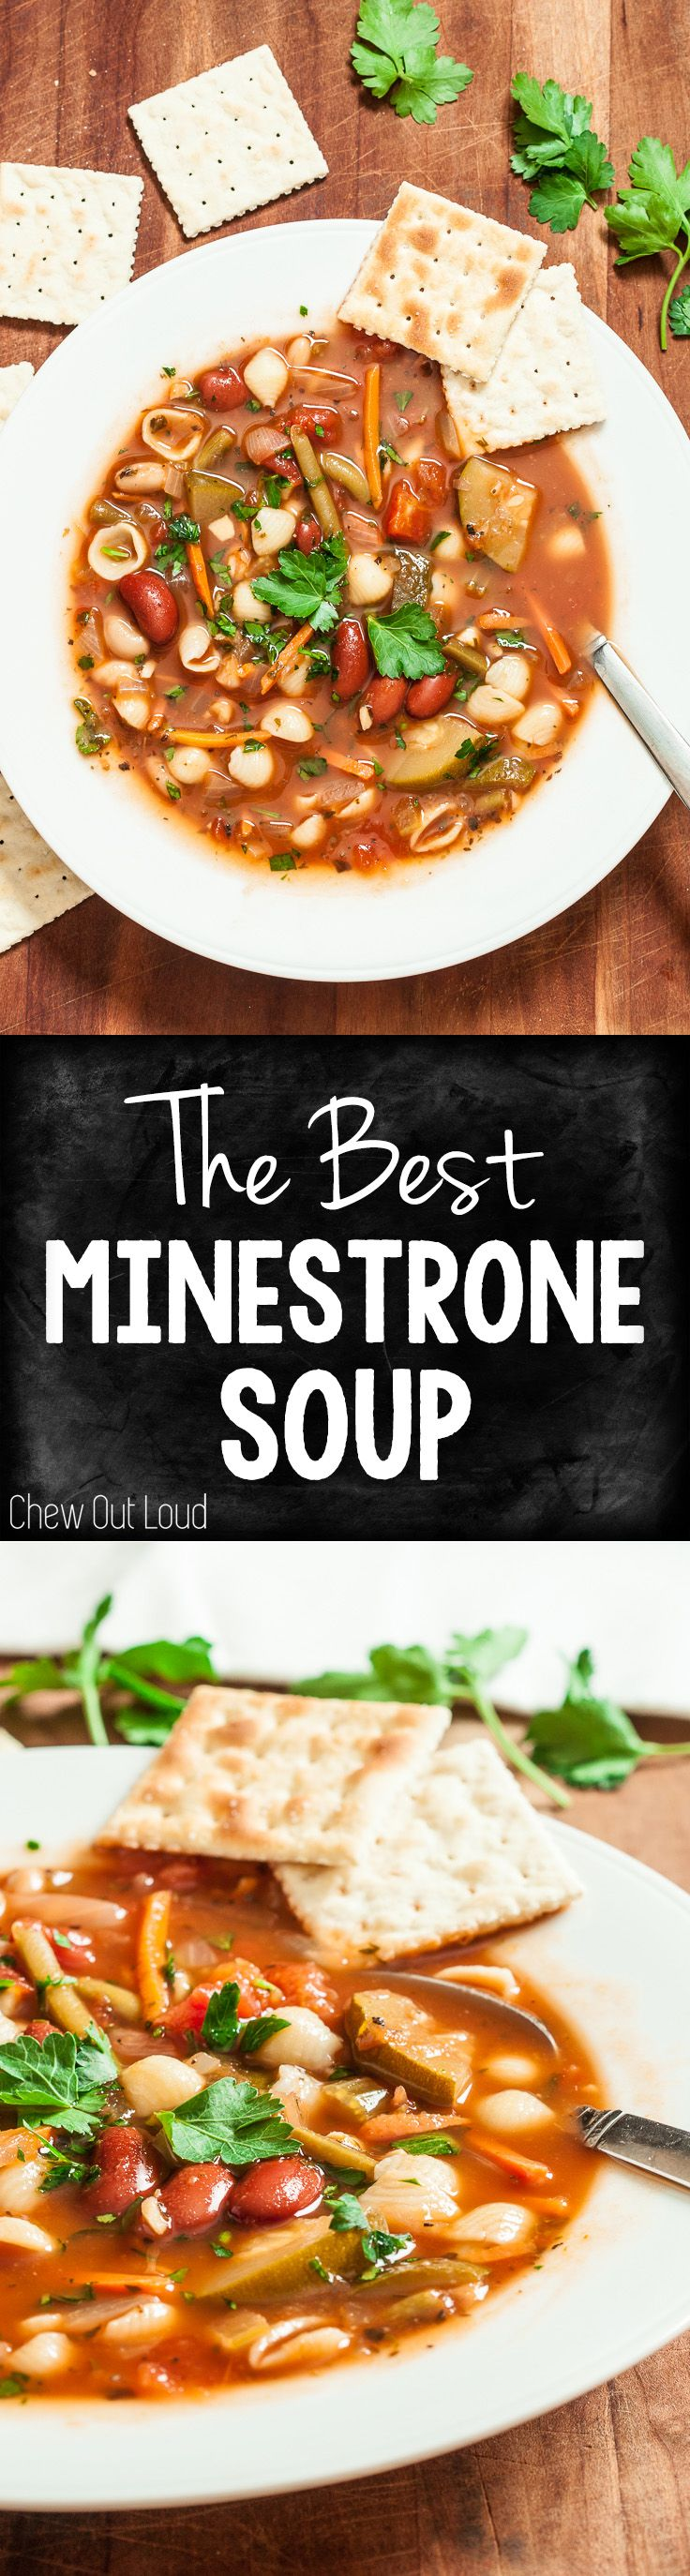 This homemade Minestrone Soup is way better than restaurant versions. It's hearty, healthy, clean, and big on flavor! Meatless never tasted so good.  #minestrone #soup #recipe